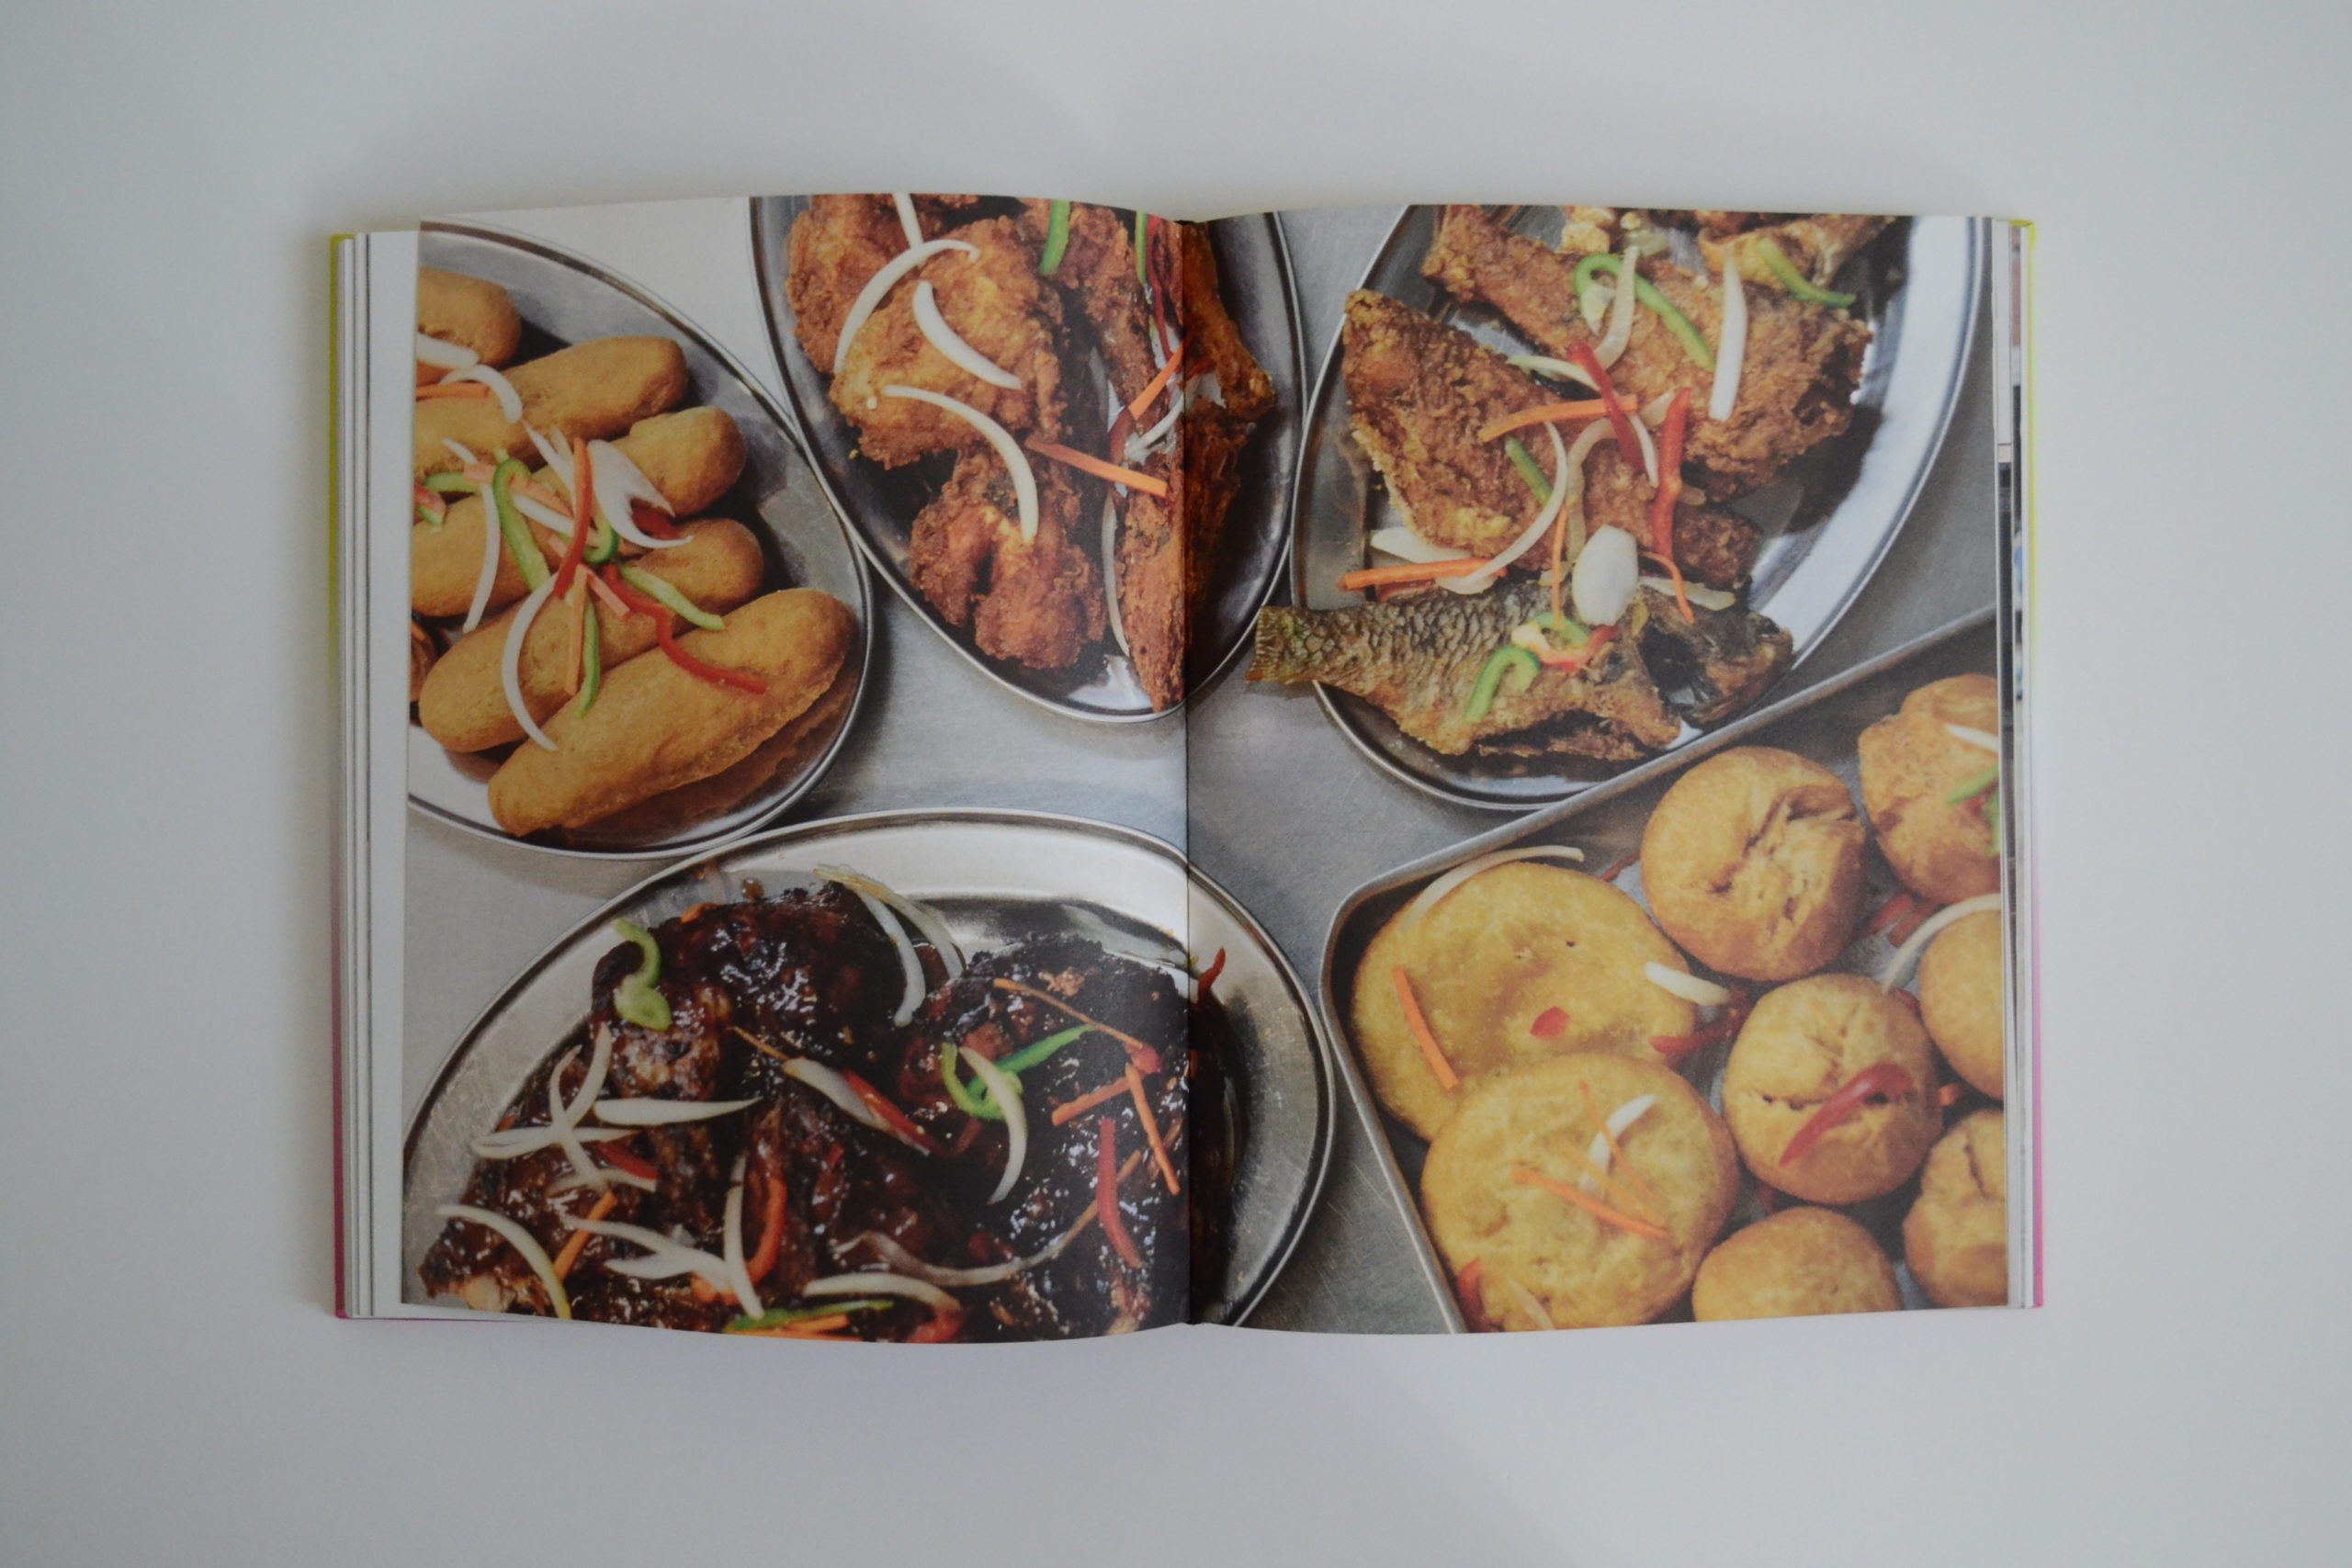 Double page spread featuring food from Peppers 'n' Spice restaurant